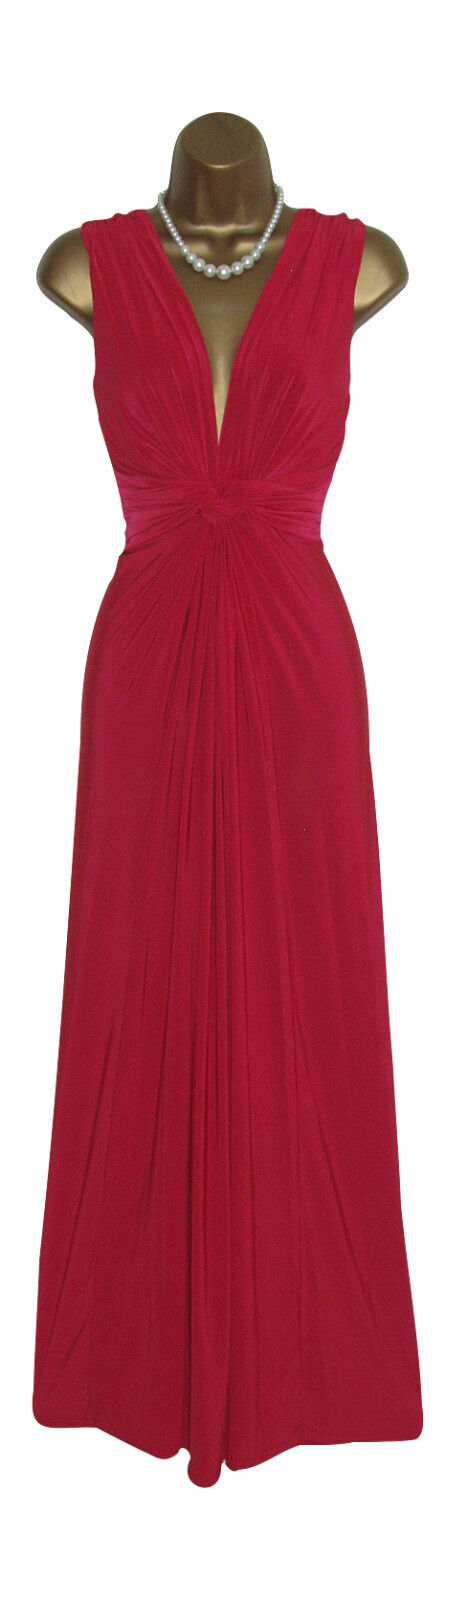 Long Red Grecian Knot Panel Maxi Evening Party Dress Size 10-26 Prom-Ball Gown